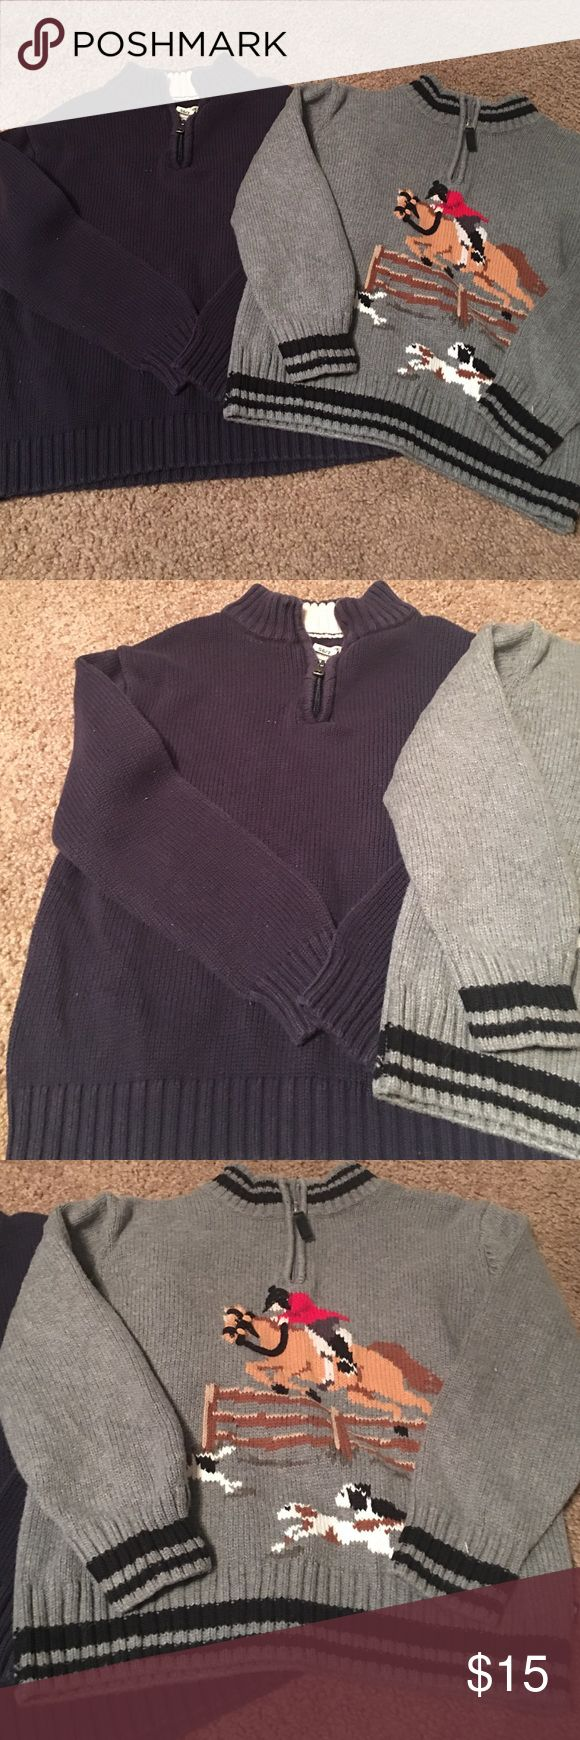 Kitestrings and Cherokee sweater lot. Boys 7 Lot of 2 sweaters. Boys Sz 7. Like new. Kitestrings and Cherokee Shirts & Tops Sweaters